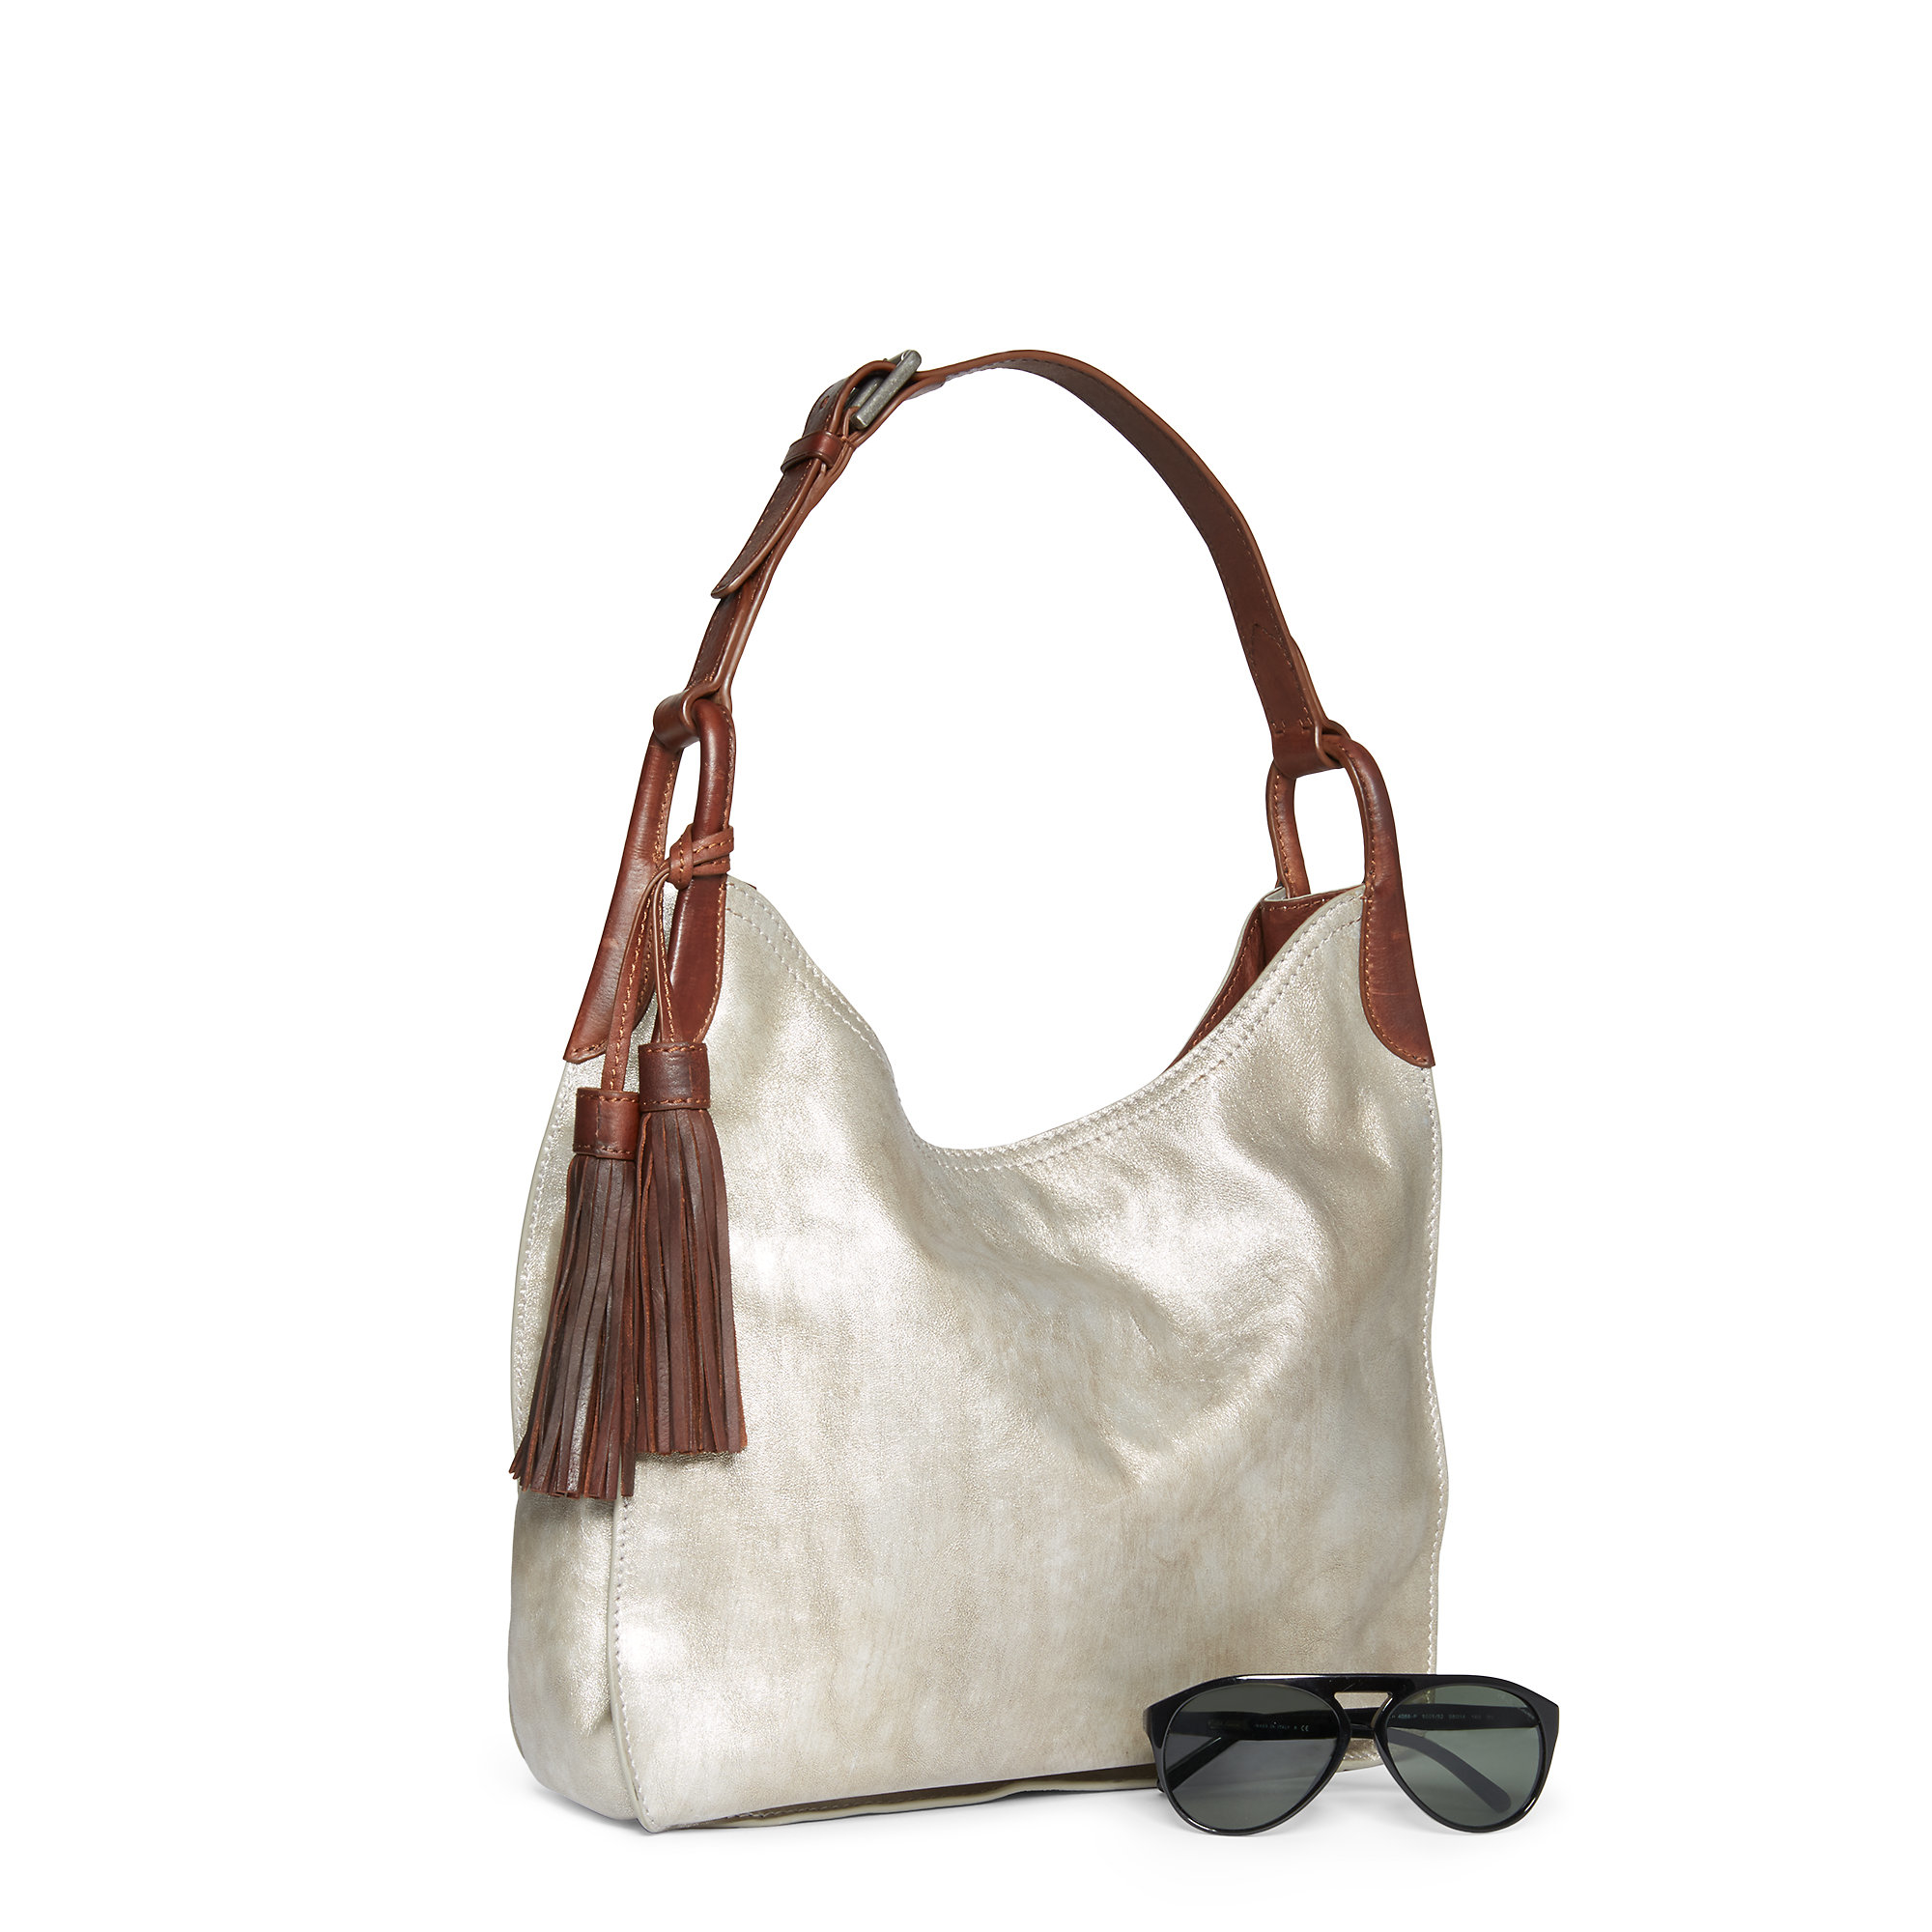 2c7b2dc692b Lyst - Polo Ralph Lauren Metallic Leather Hobo Bag in Metallic